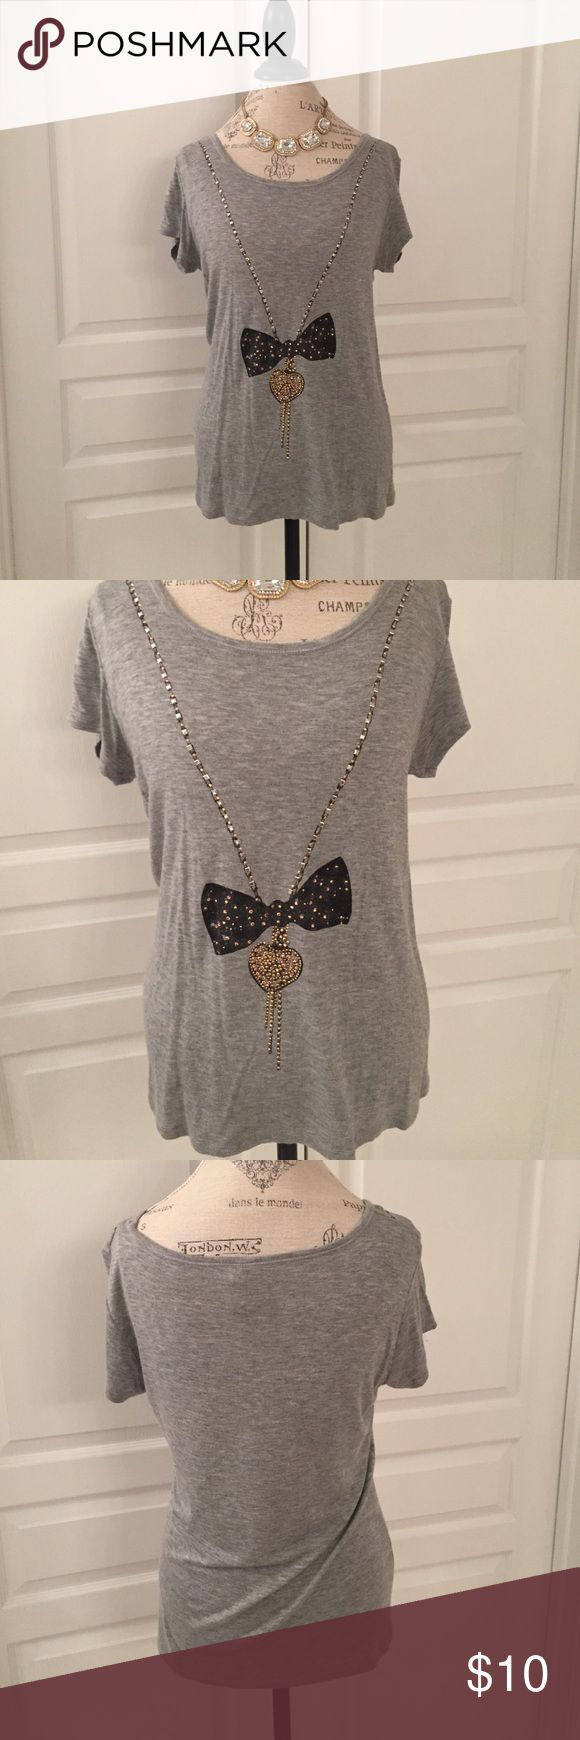 Grey Slouchy Bow Necklace Tee Adorable, soft tee with bow necklace detail. With cute rose gold accents. Worn less than 10 times. Size medium. Charming Charlie Tops Tees - Short Sleeve